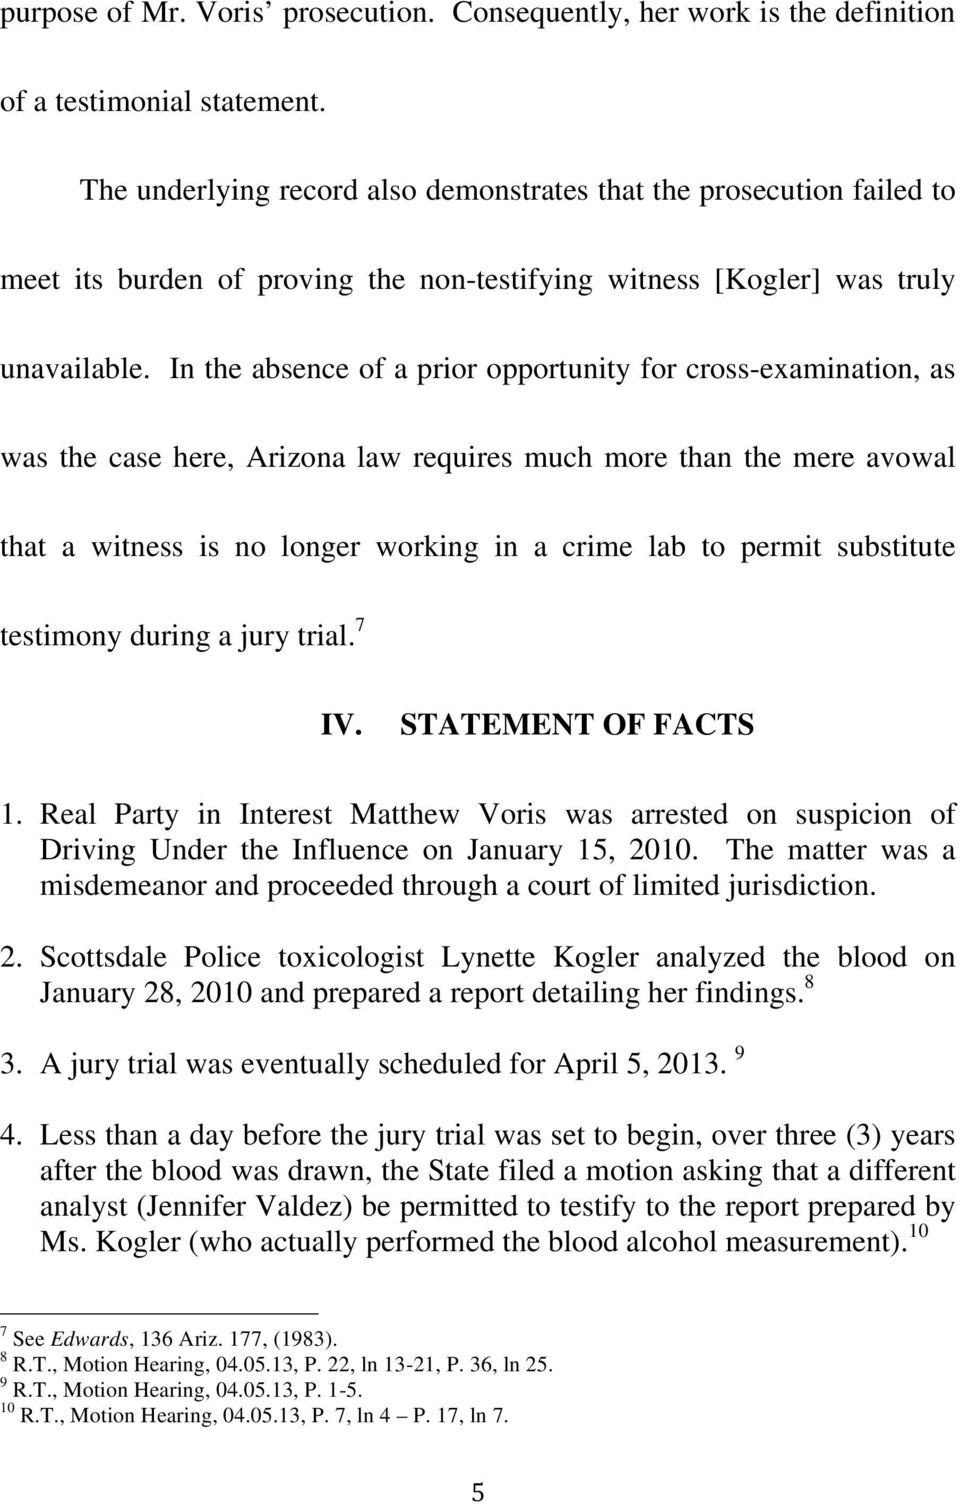 In the absence of a prior opportunity for cross-examination, as was the case here, Arizona law requires much more than the mere avowal that a witness is no longer working in a crime lab to permit